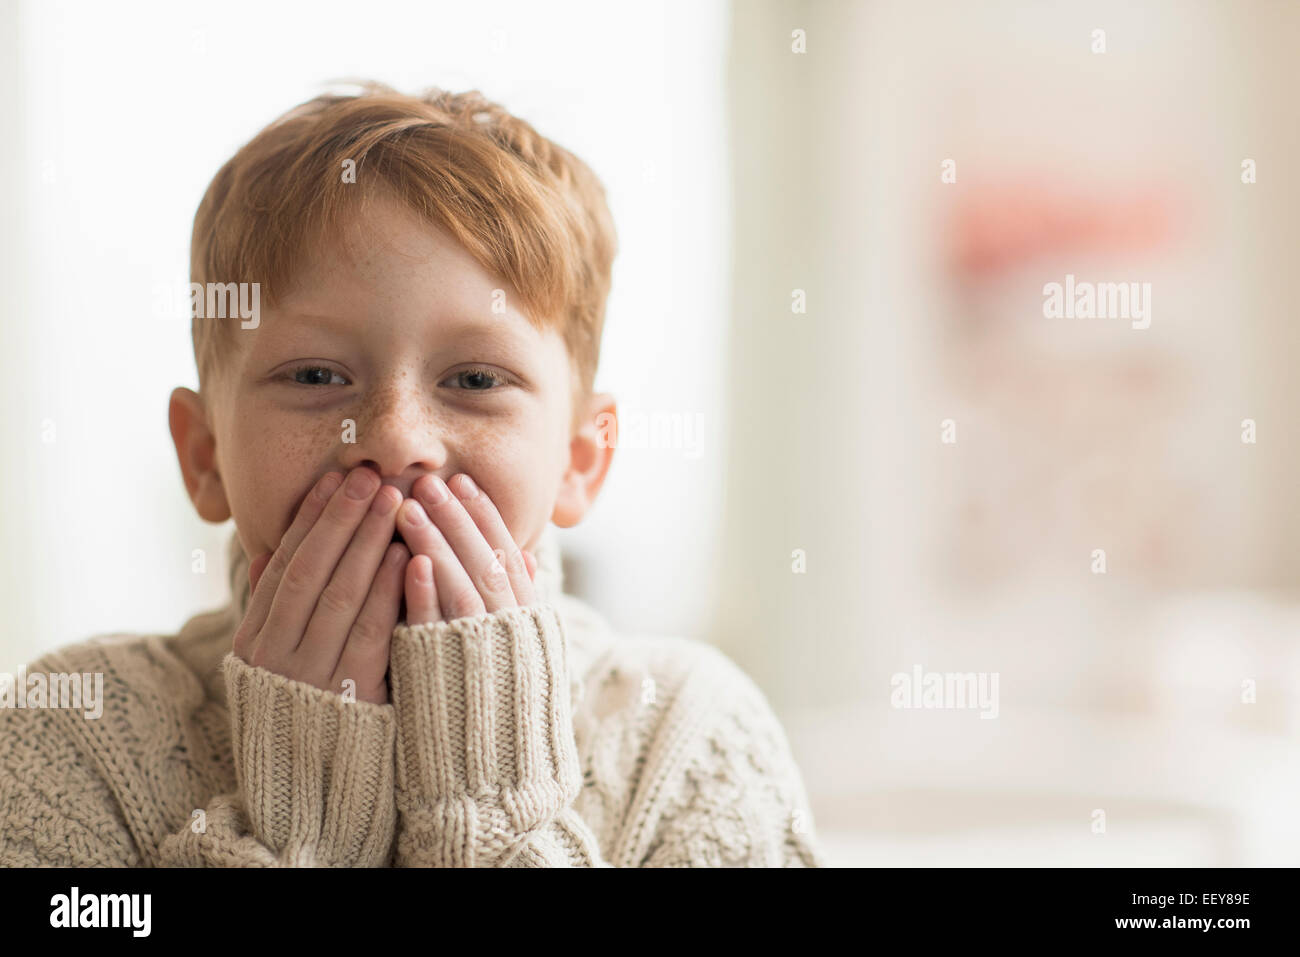 Portrait of boy (6-7) with hands covering mouth Stock Photo